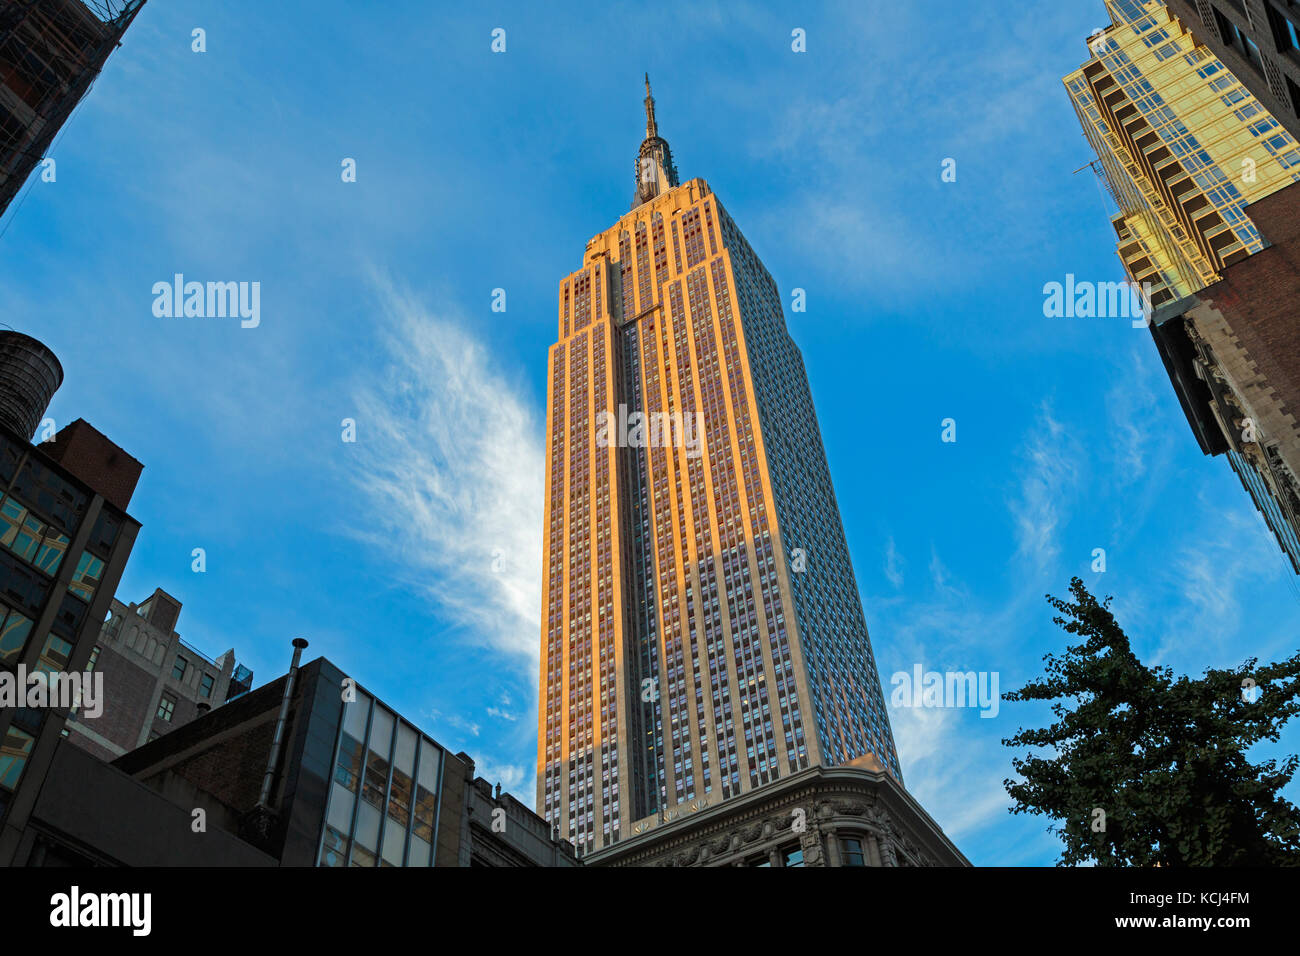 New York City, New York State, United States of America.  The Empire State Building skyscraper. - Stock Image